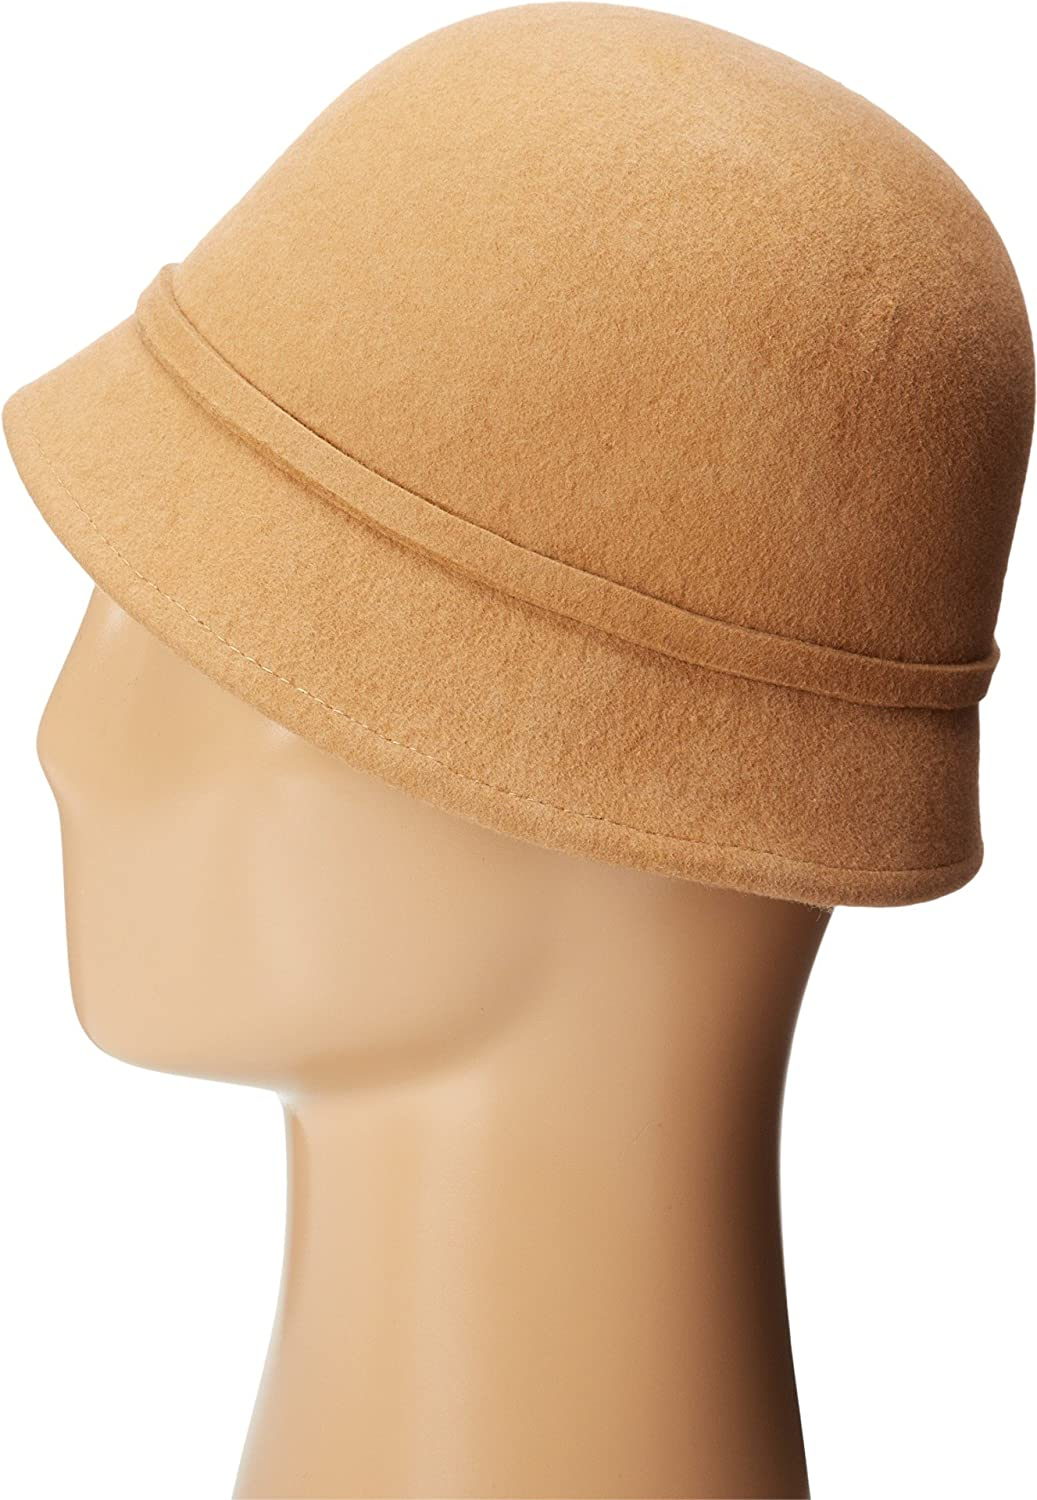 b0aa49fb843 SCALA Women s Wool Felt Cloche with Assorted Flowers Camel One Size at  Amazon Women s Clothing store